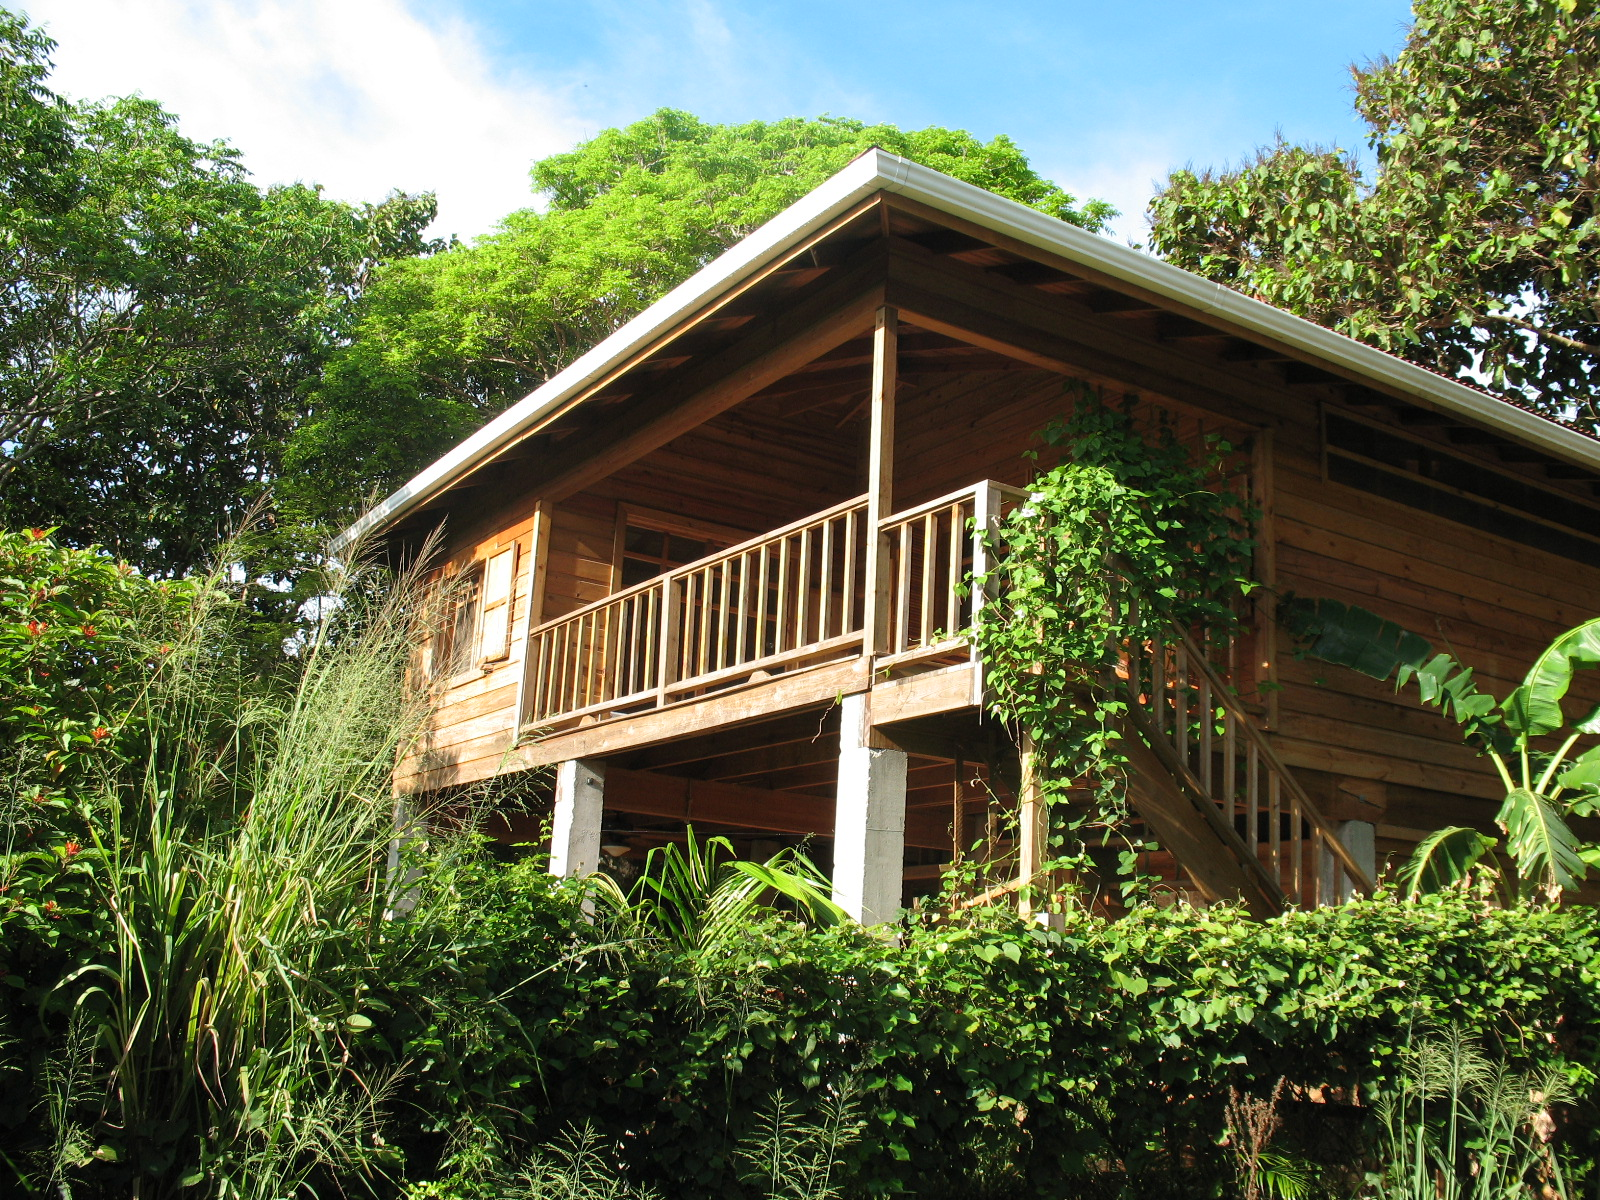 eco-house-vacation-rental-utila-the-bay-islands-honduras-1600x1200